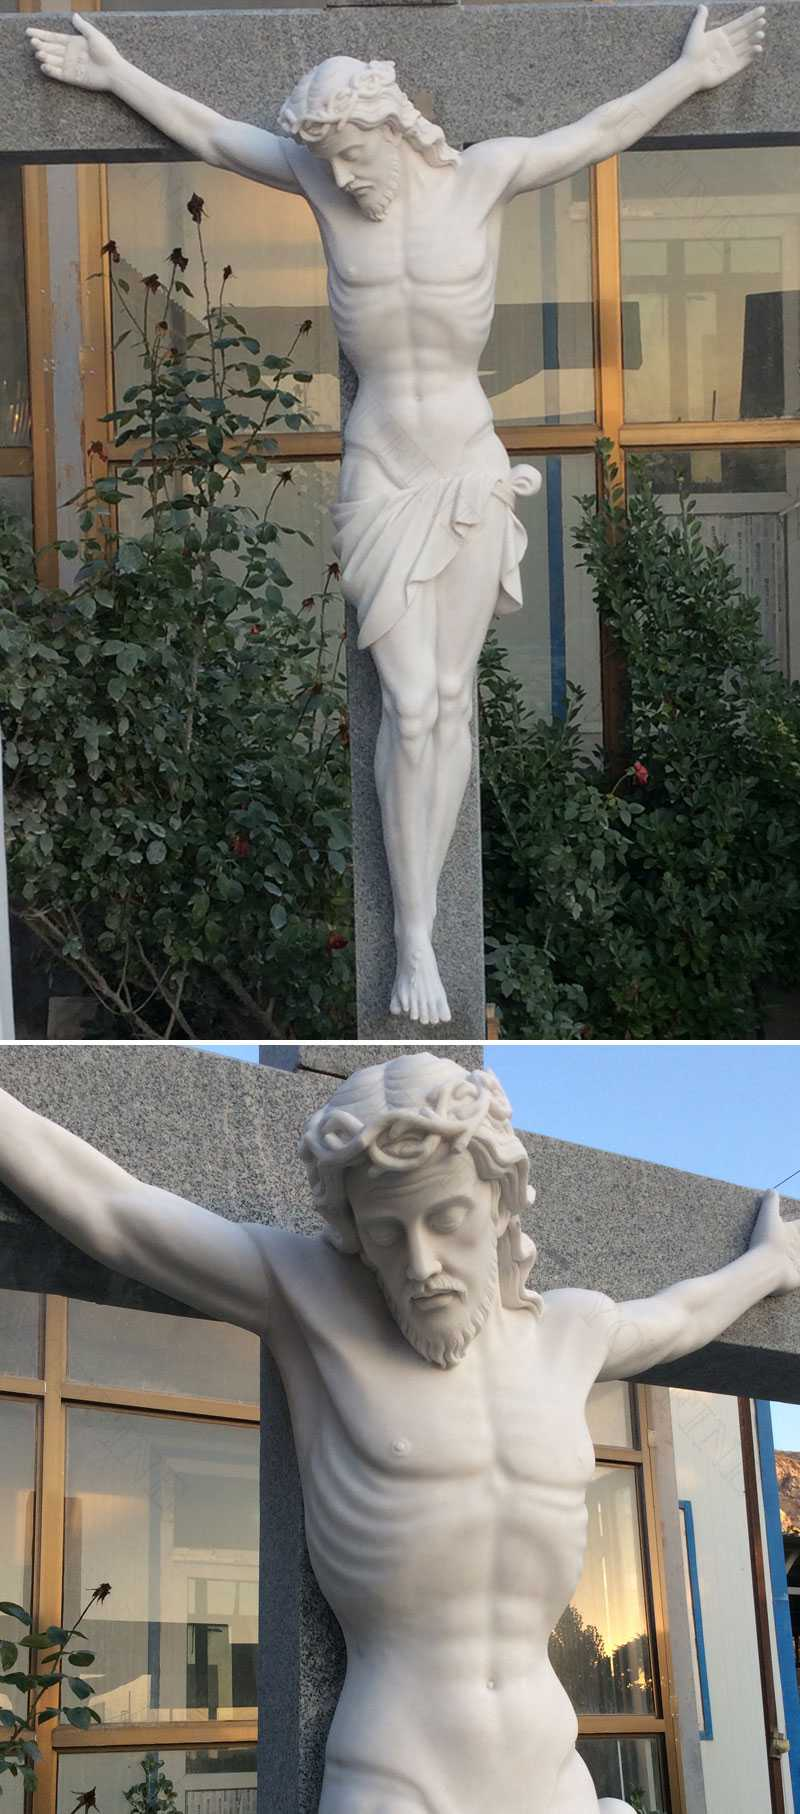 Life Size Christian Catholic Church Famous Sculpture Crosses and Crucifixes with Jesus Statue for Sales